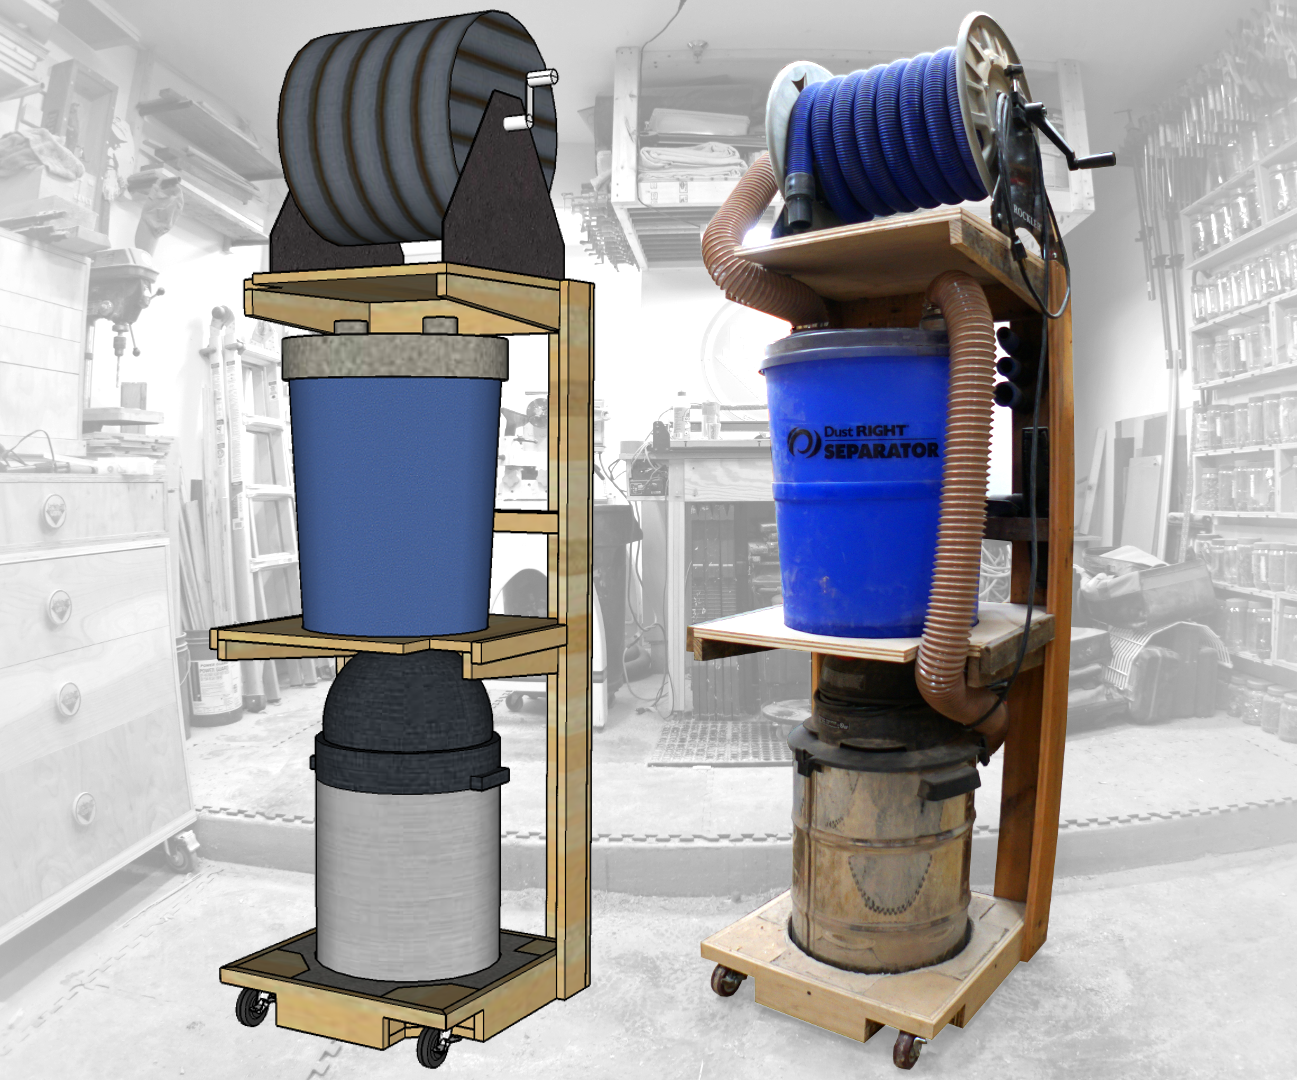 Space Saving Shop-Vac Dust Collector Cart: 11 Steps (with